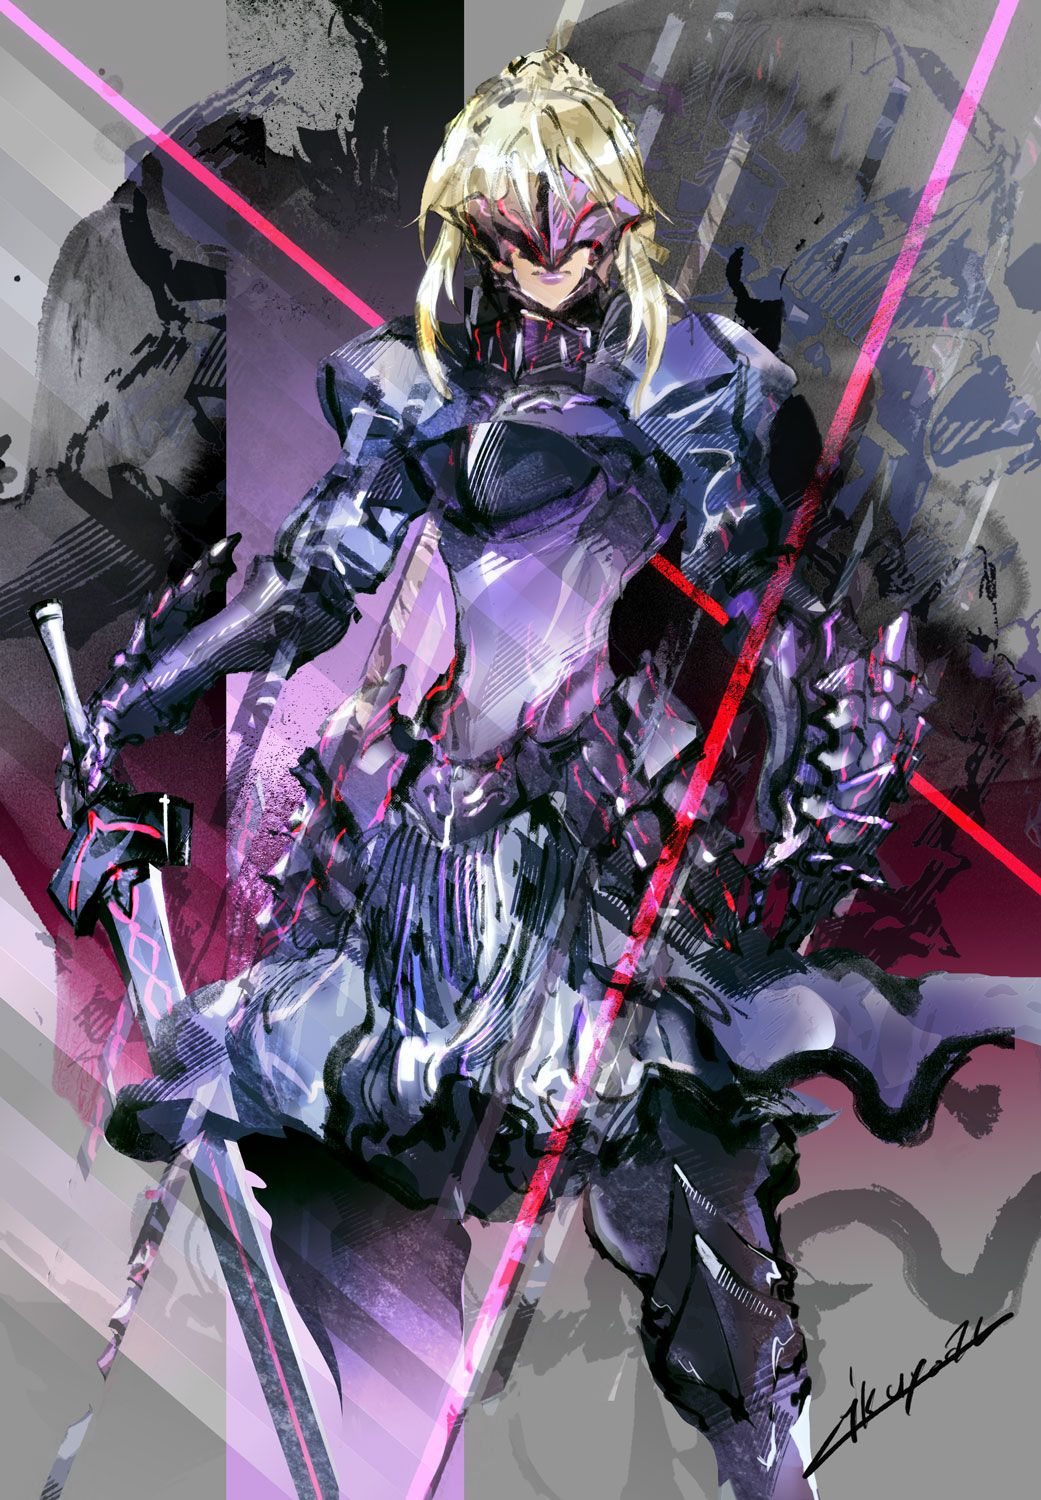 Incredible saber alter fate stay night anime fate anime